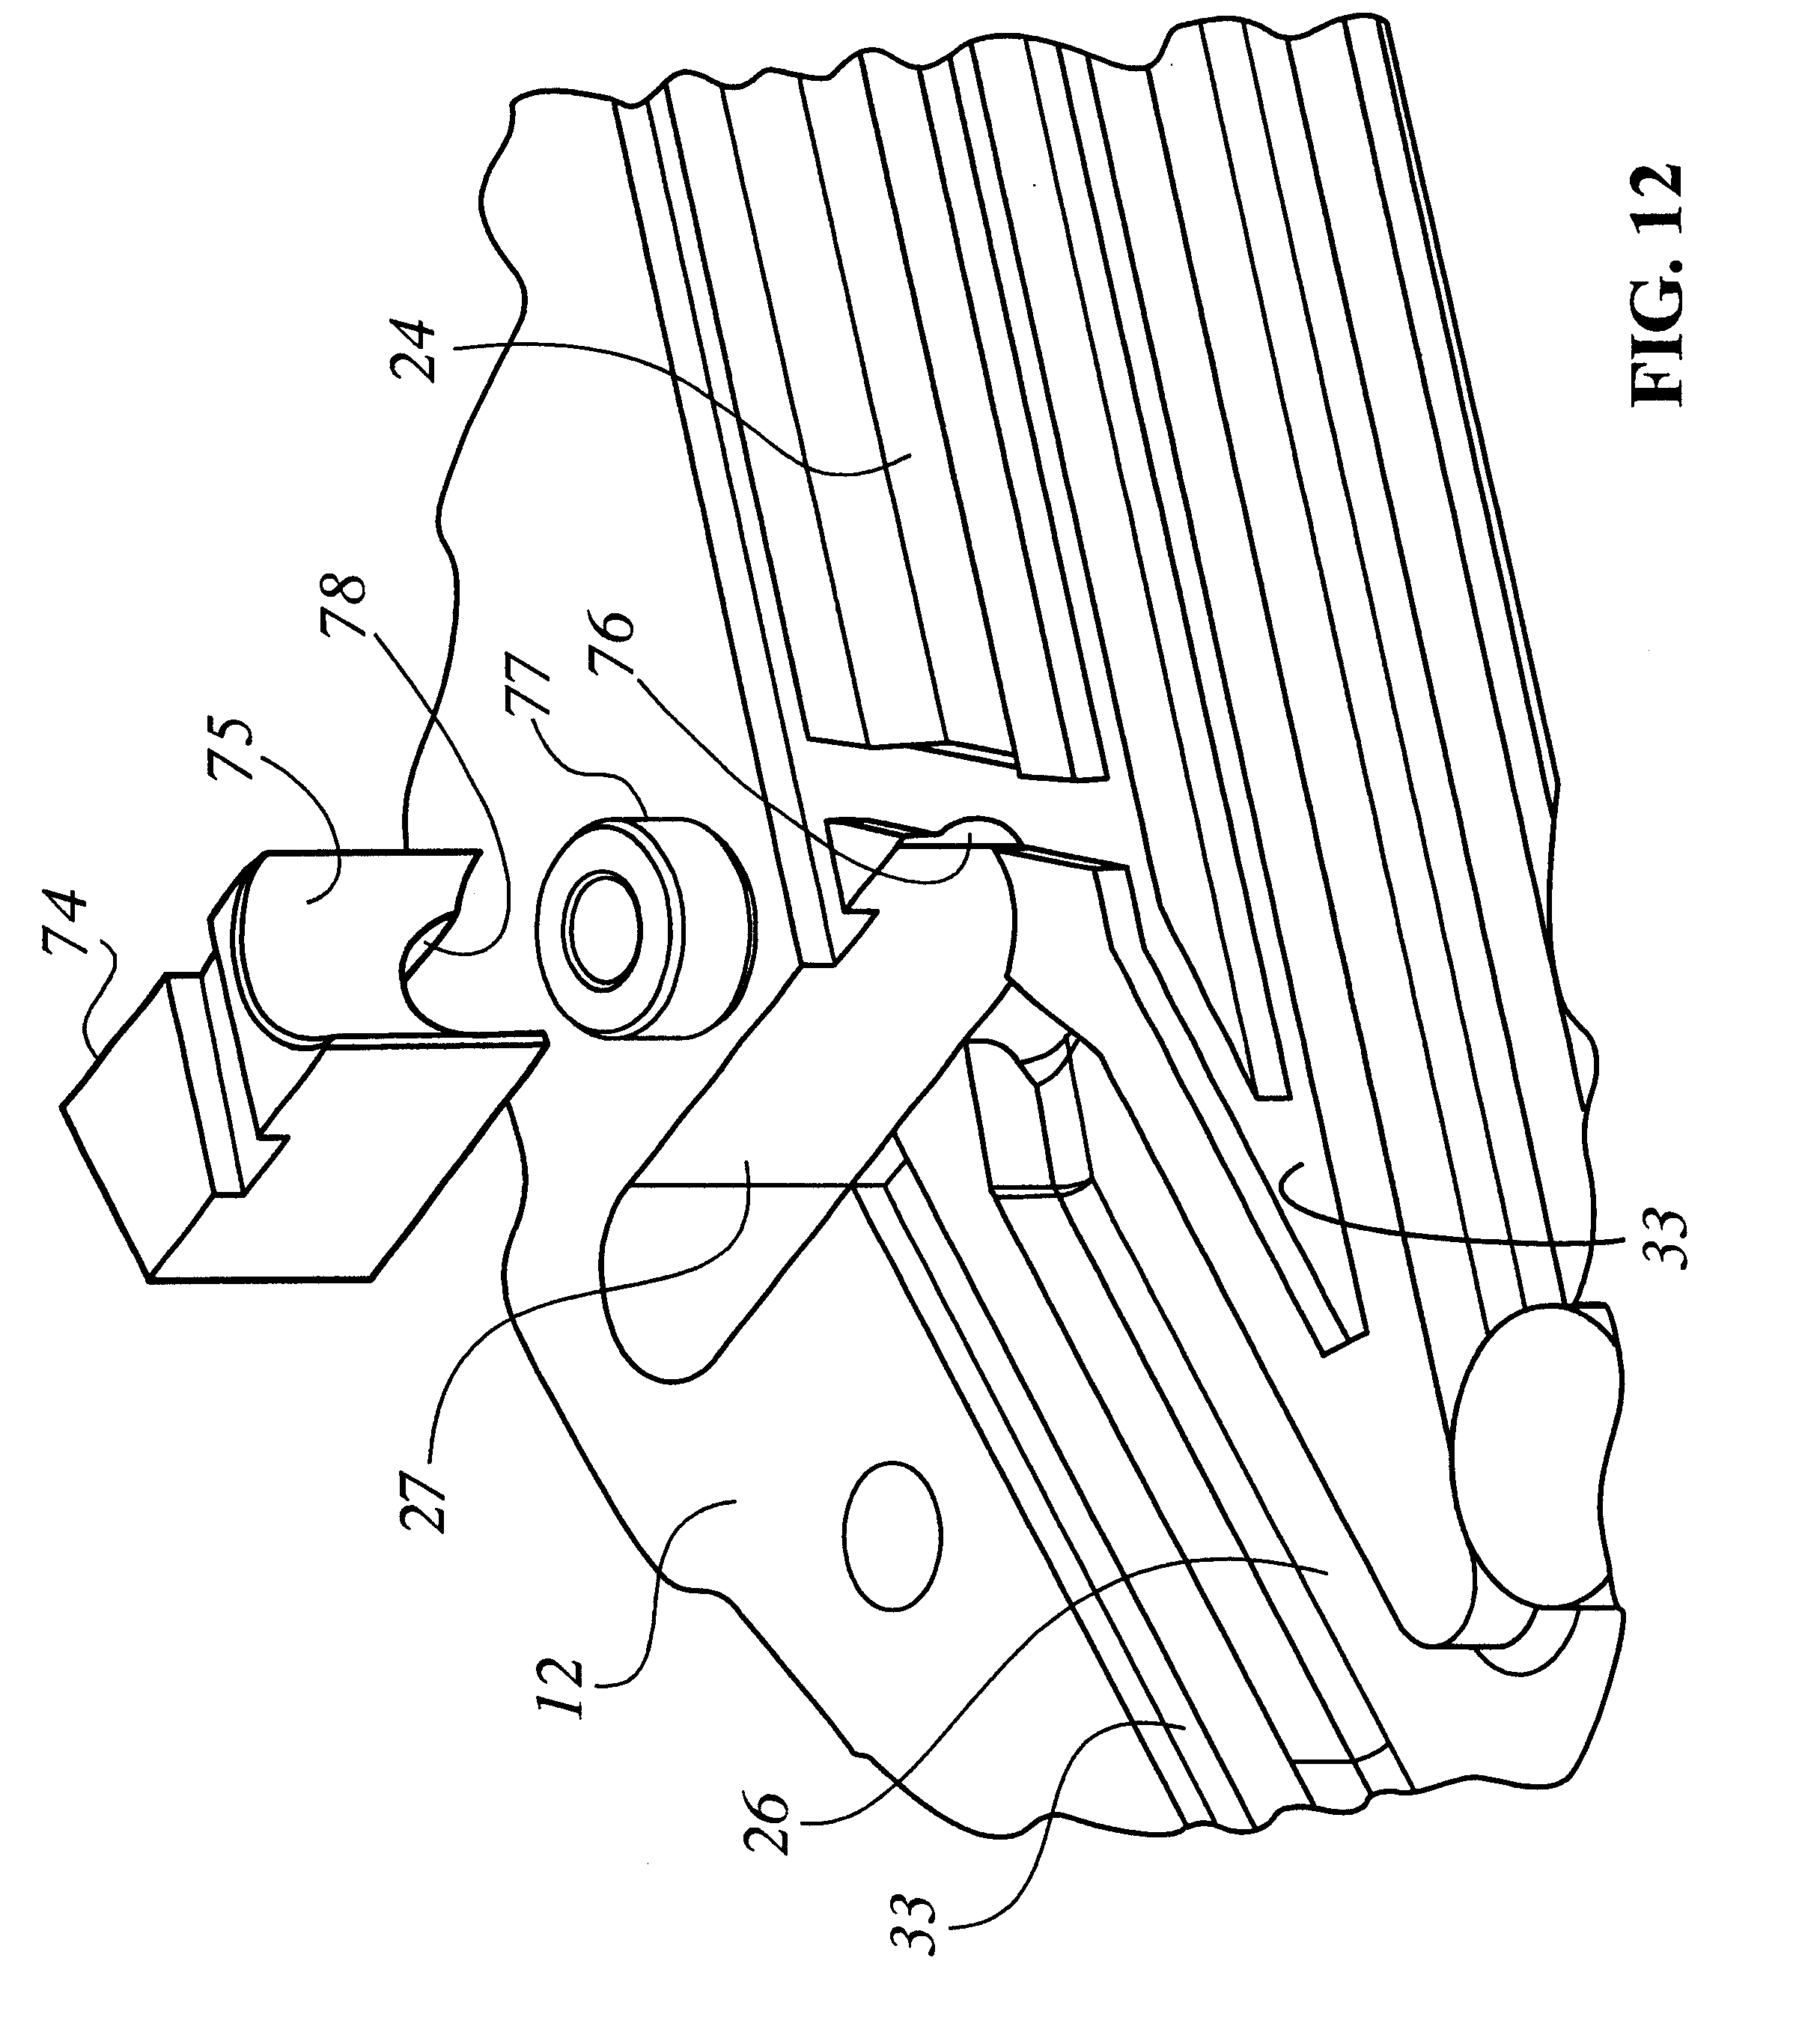 US6481409 on exhaust system supports